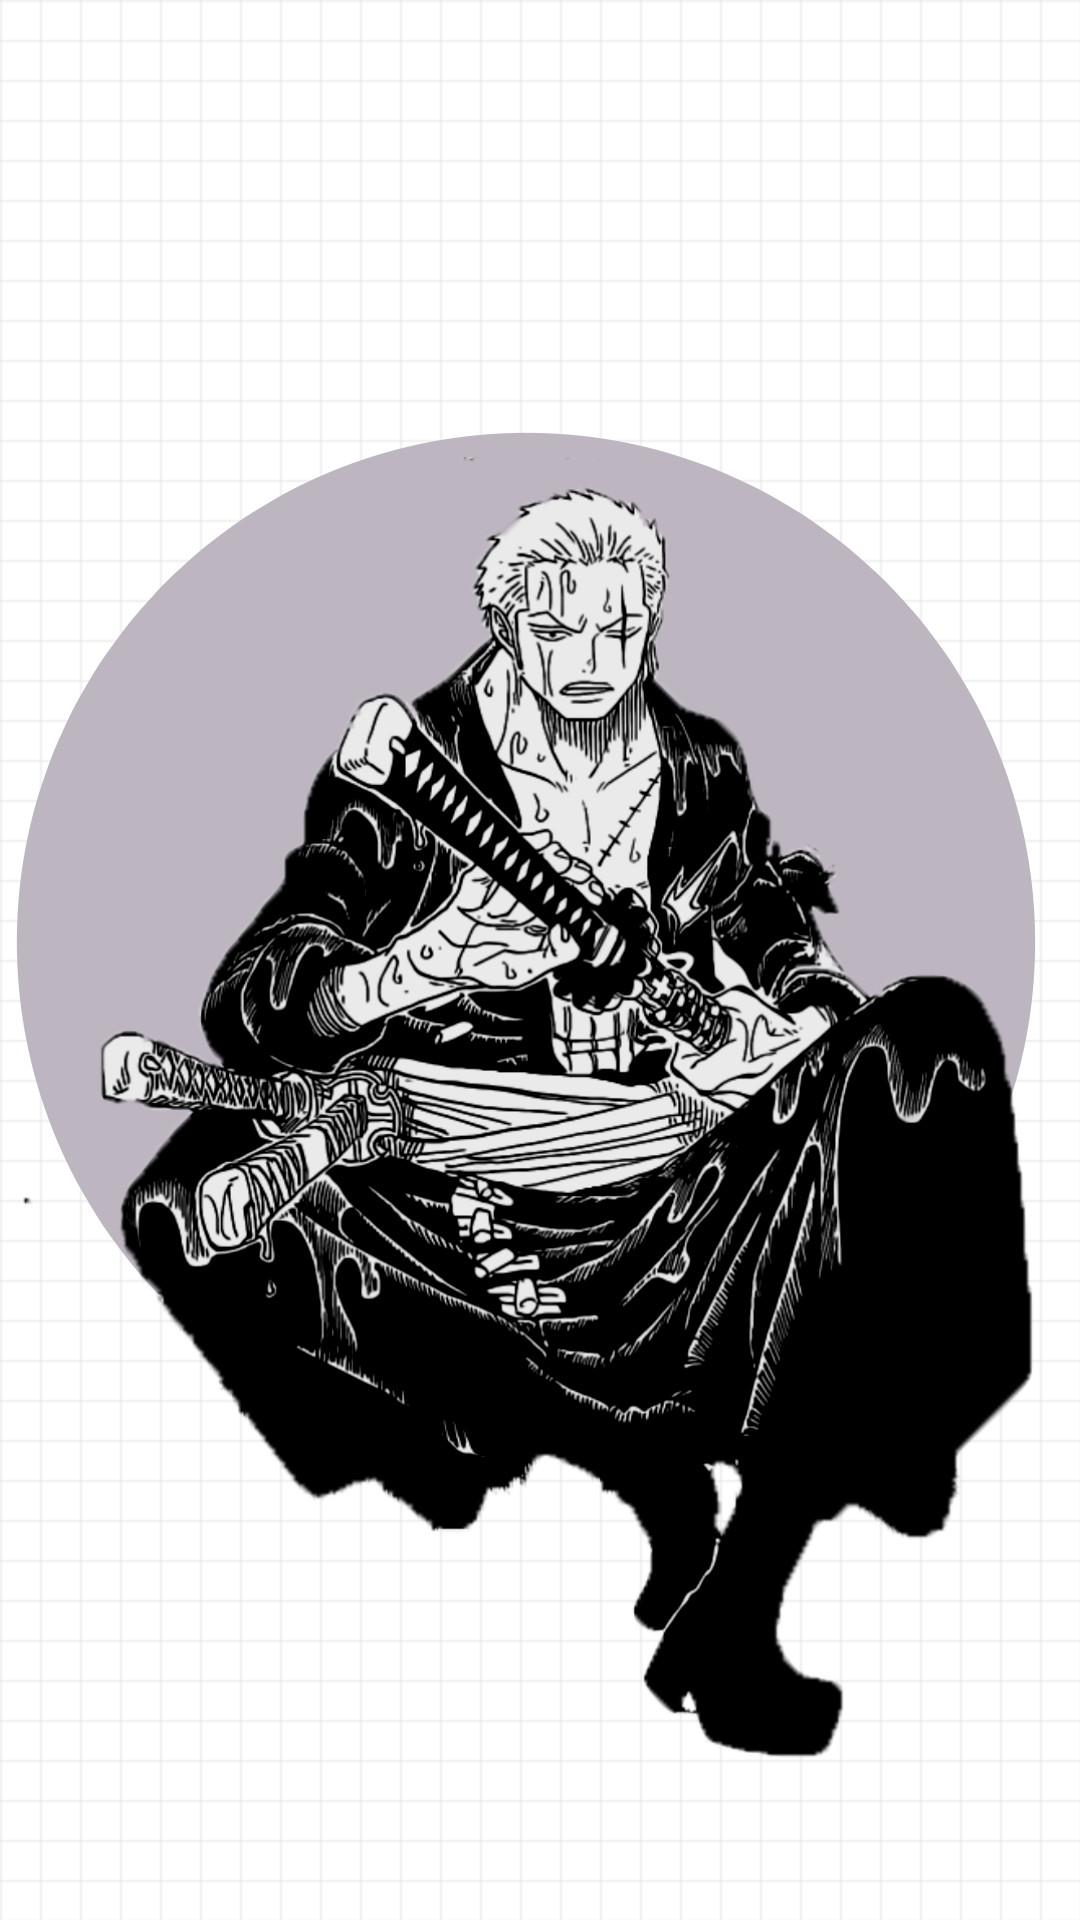 Wallpaper Zoro Kolpaper Awesome Free Hd Wallpapers